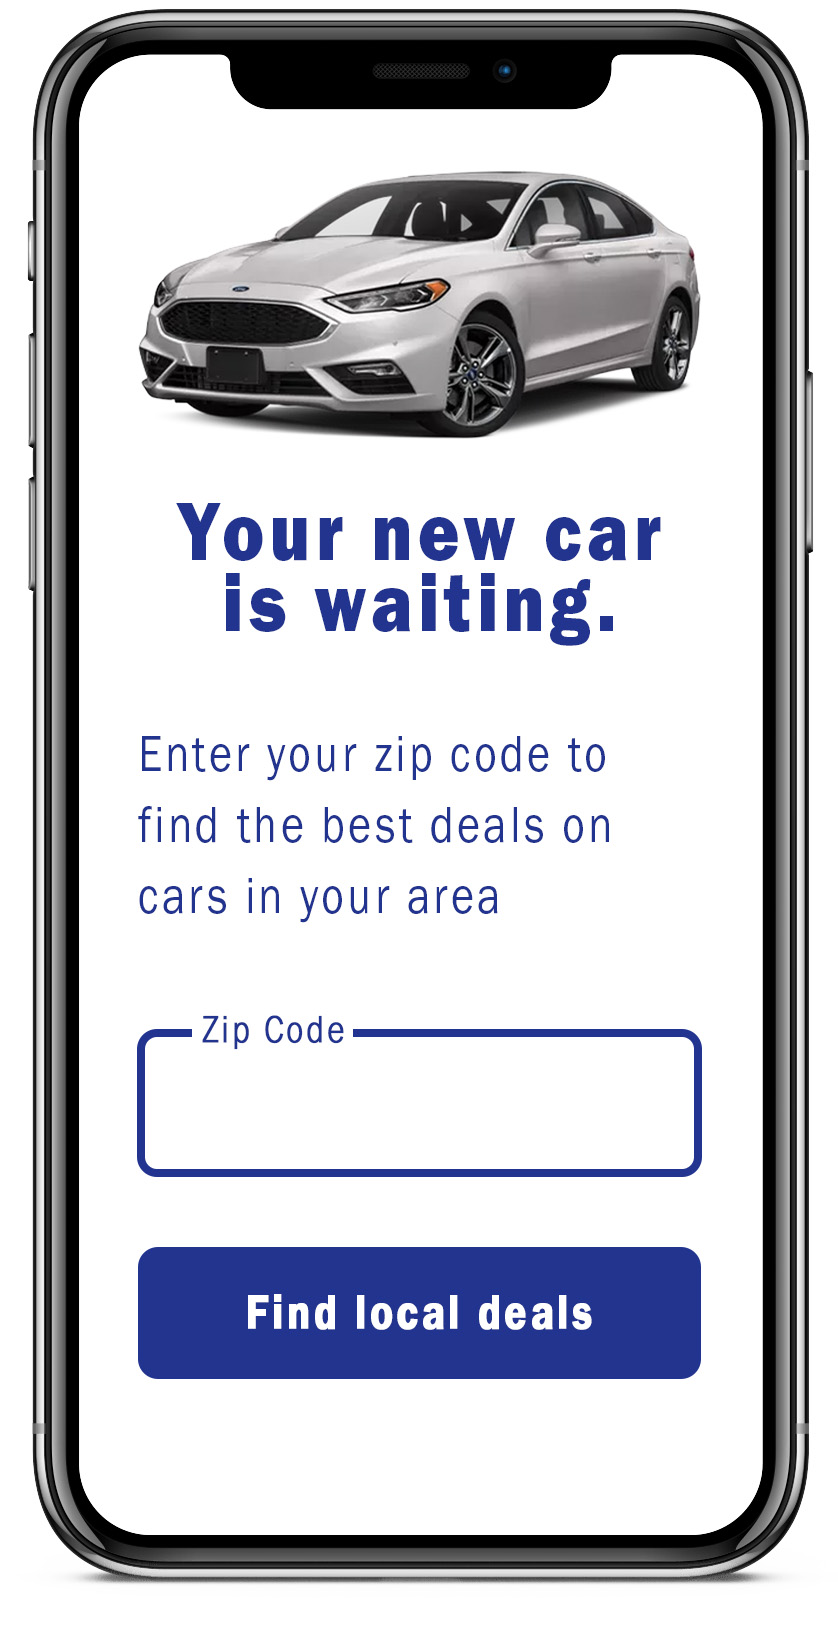 headline: Your new car is waiting.           Body: Enter your zip code to find the best deals on cars in your area.           Button: Find local deals